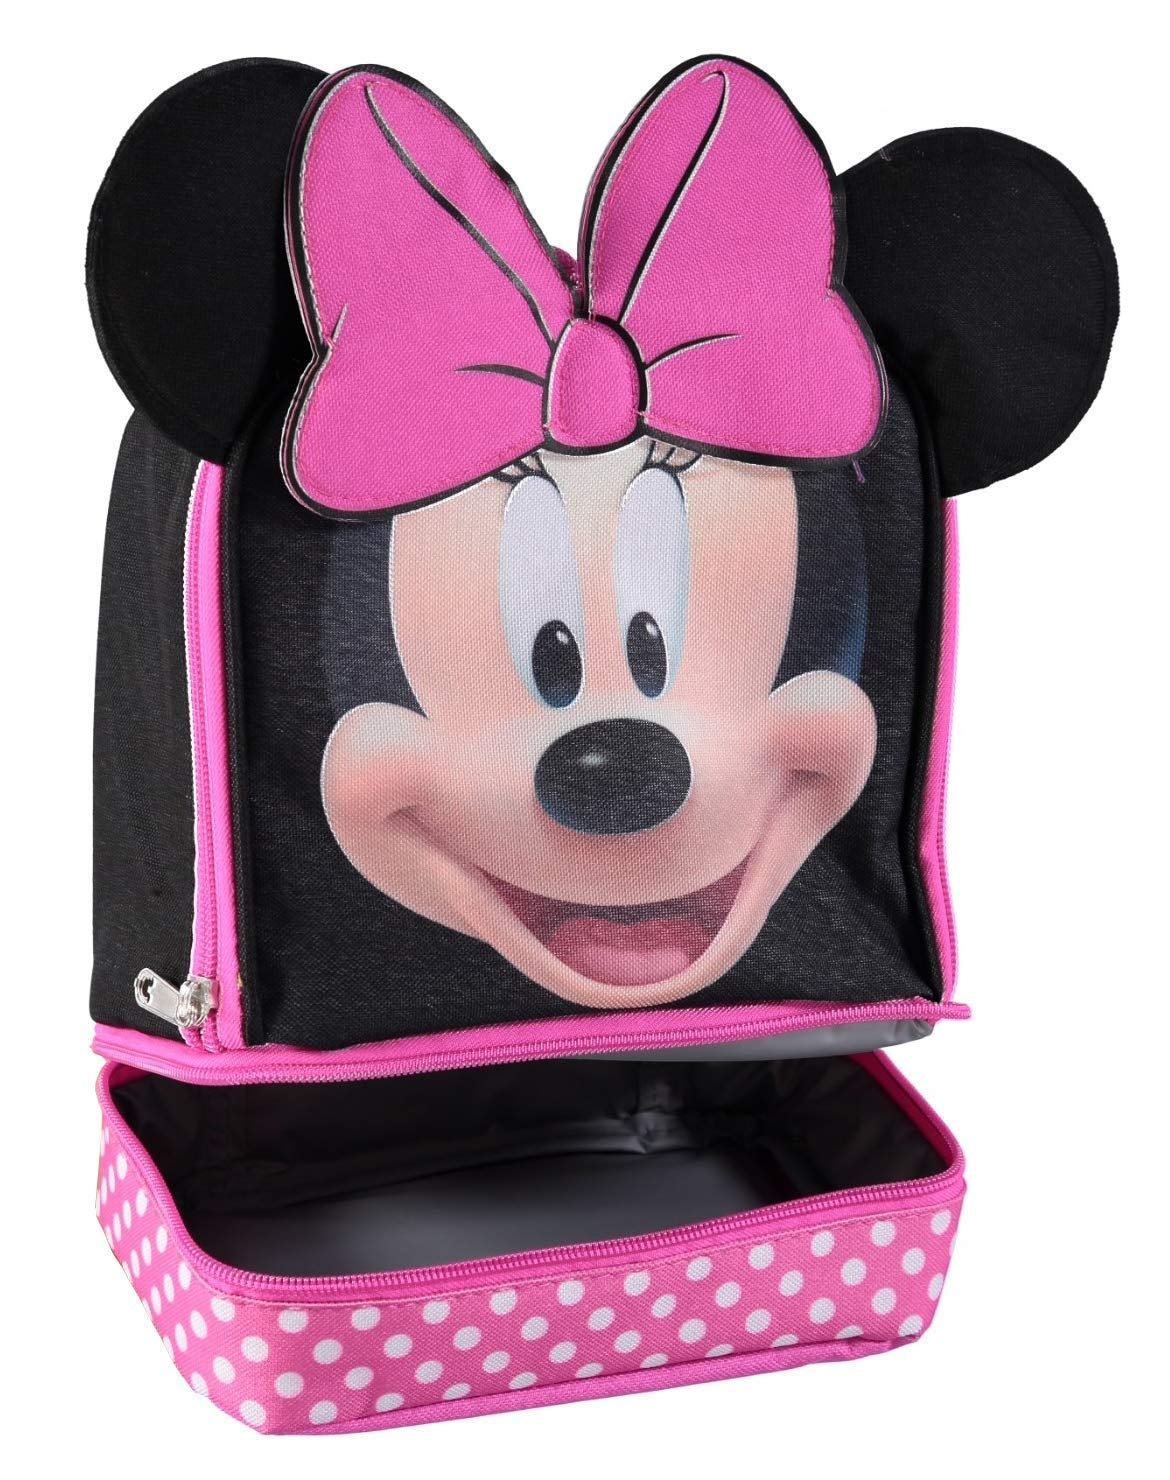 Disney MN29130-SC-BK00 Minnie Mouse Dual Compartment Lunch Kit with Ears Insulated, One Size, Black